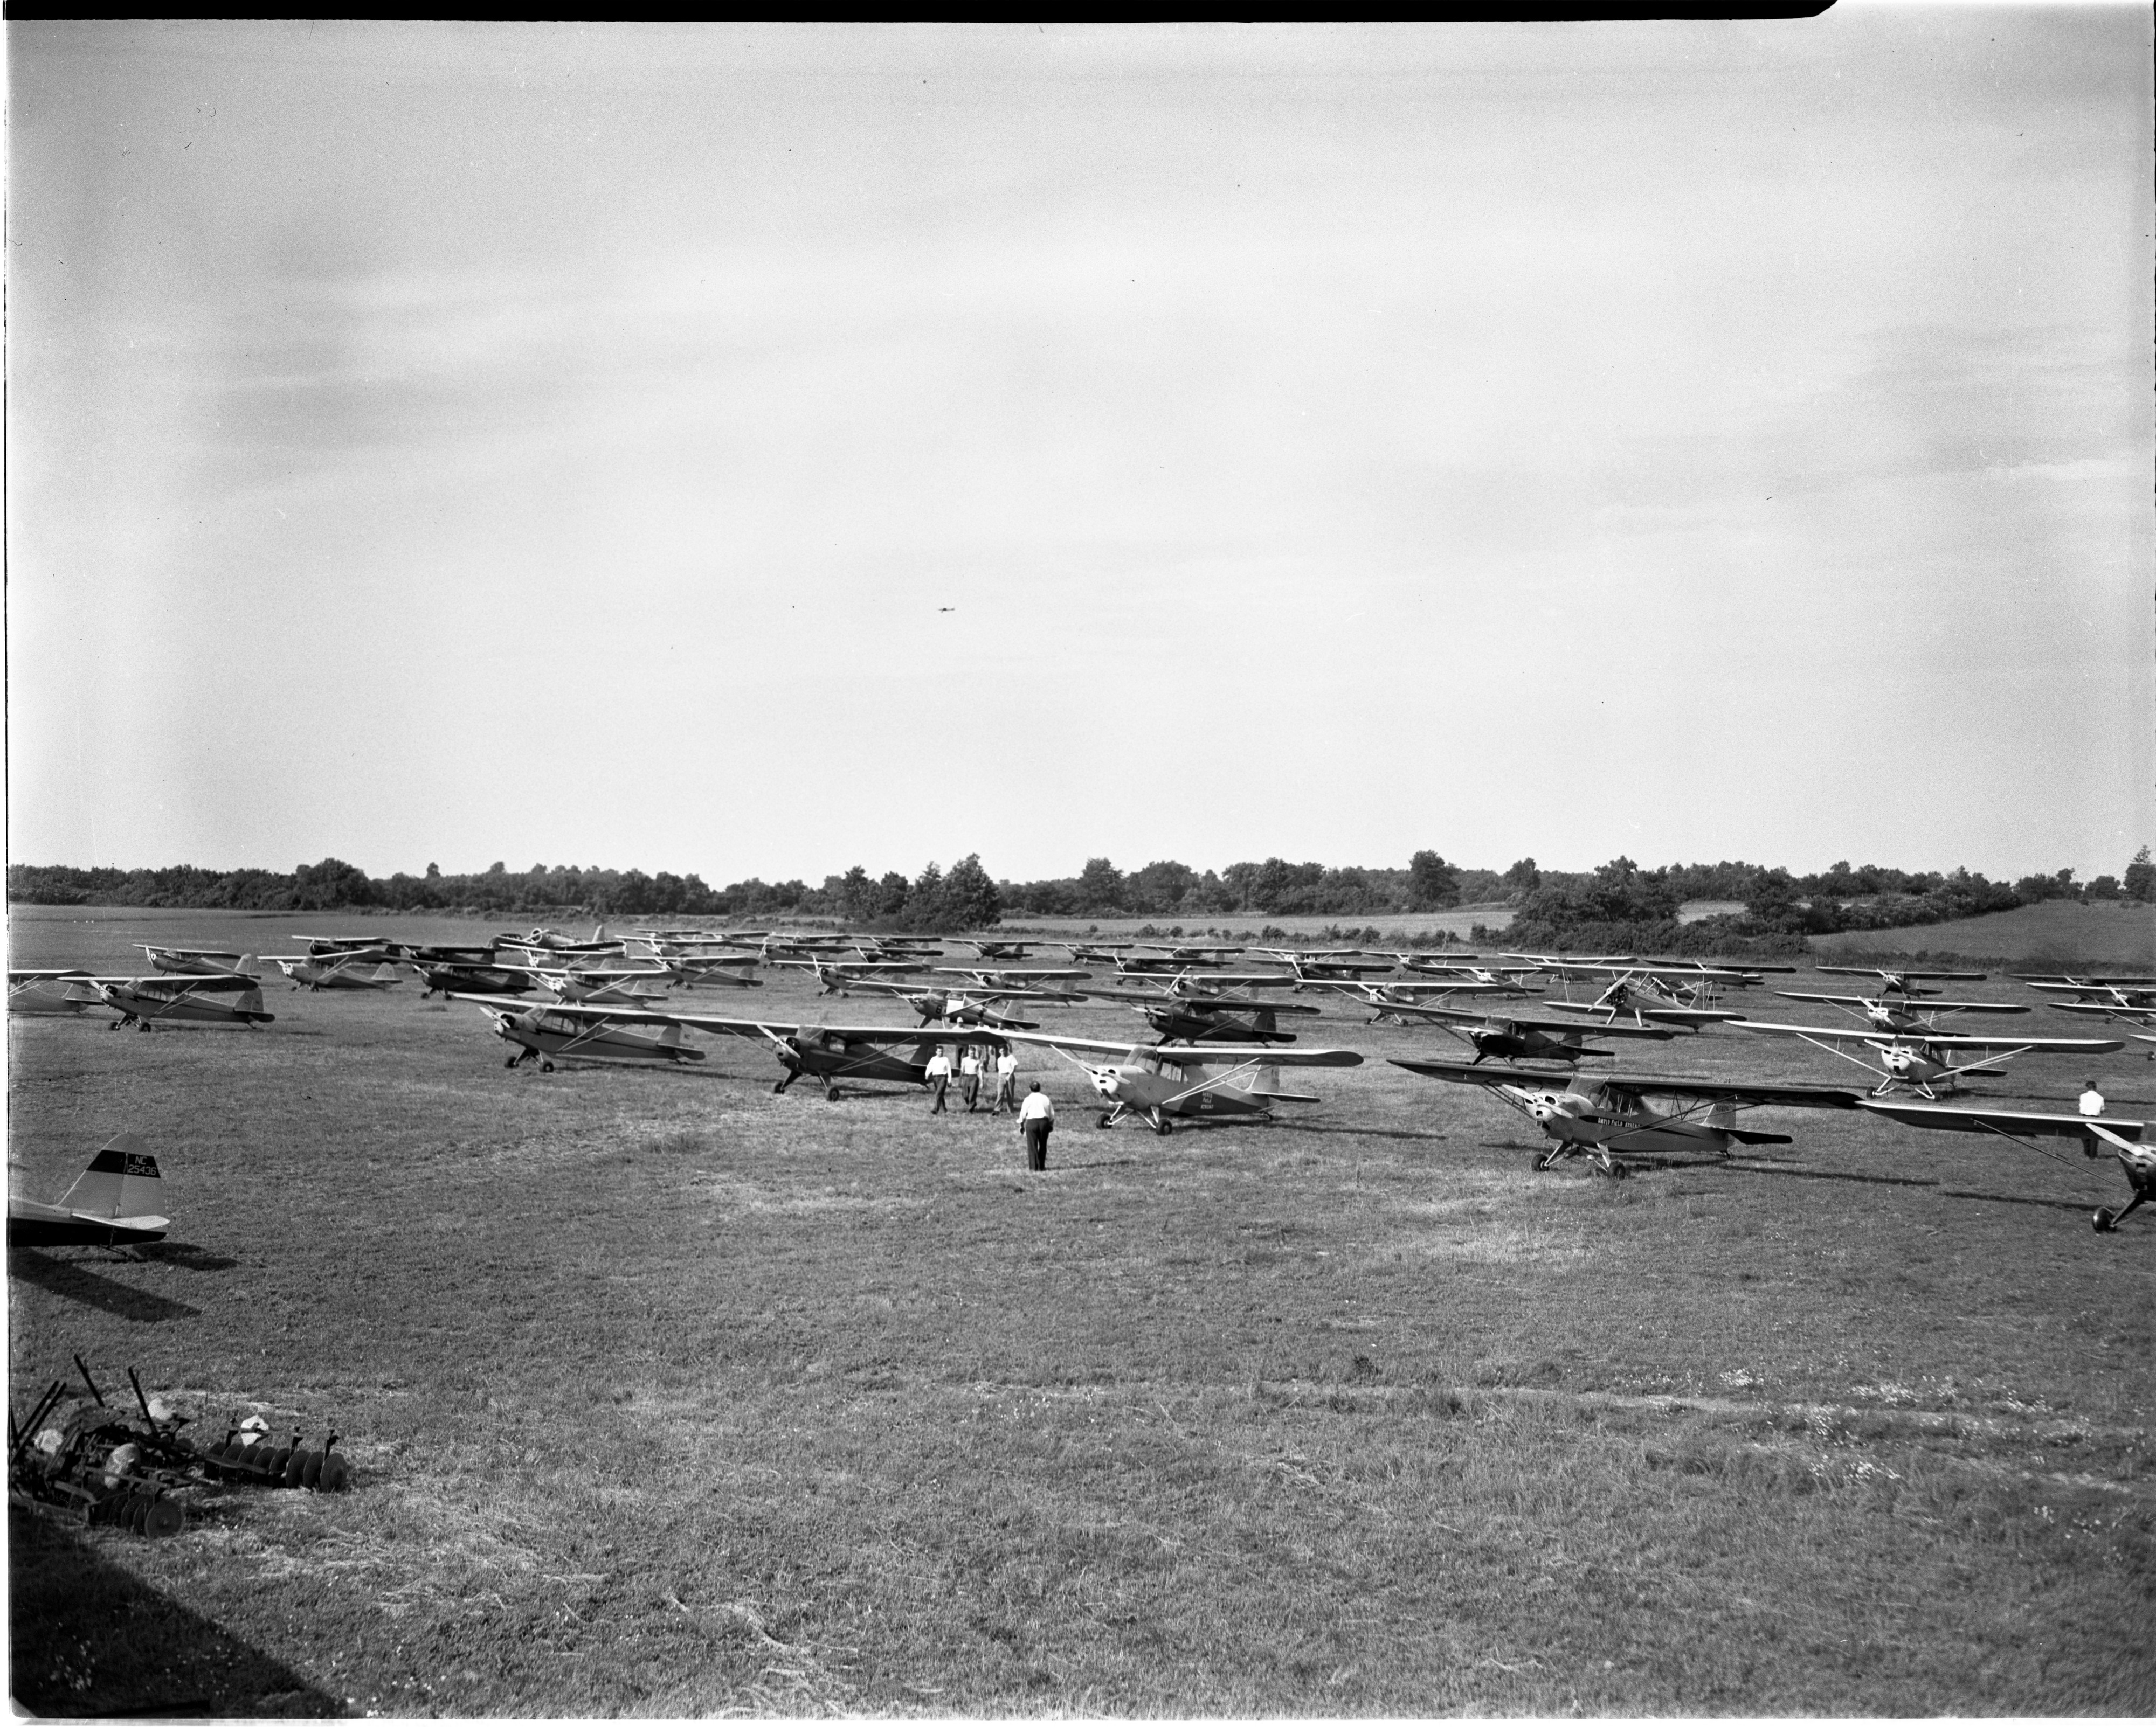 The Dawn Patrol Aviators Visit Jonesville, June 1947 image